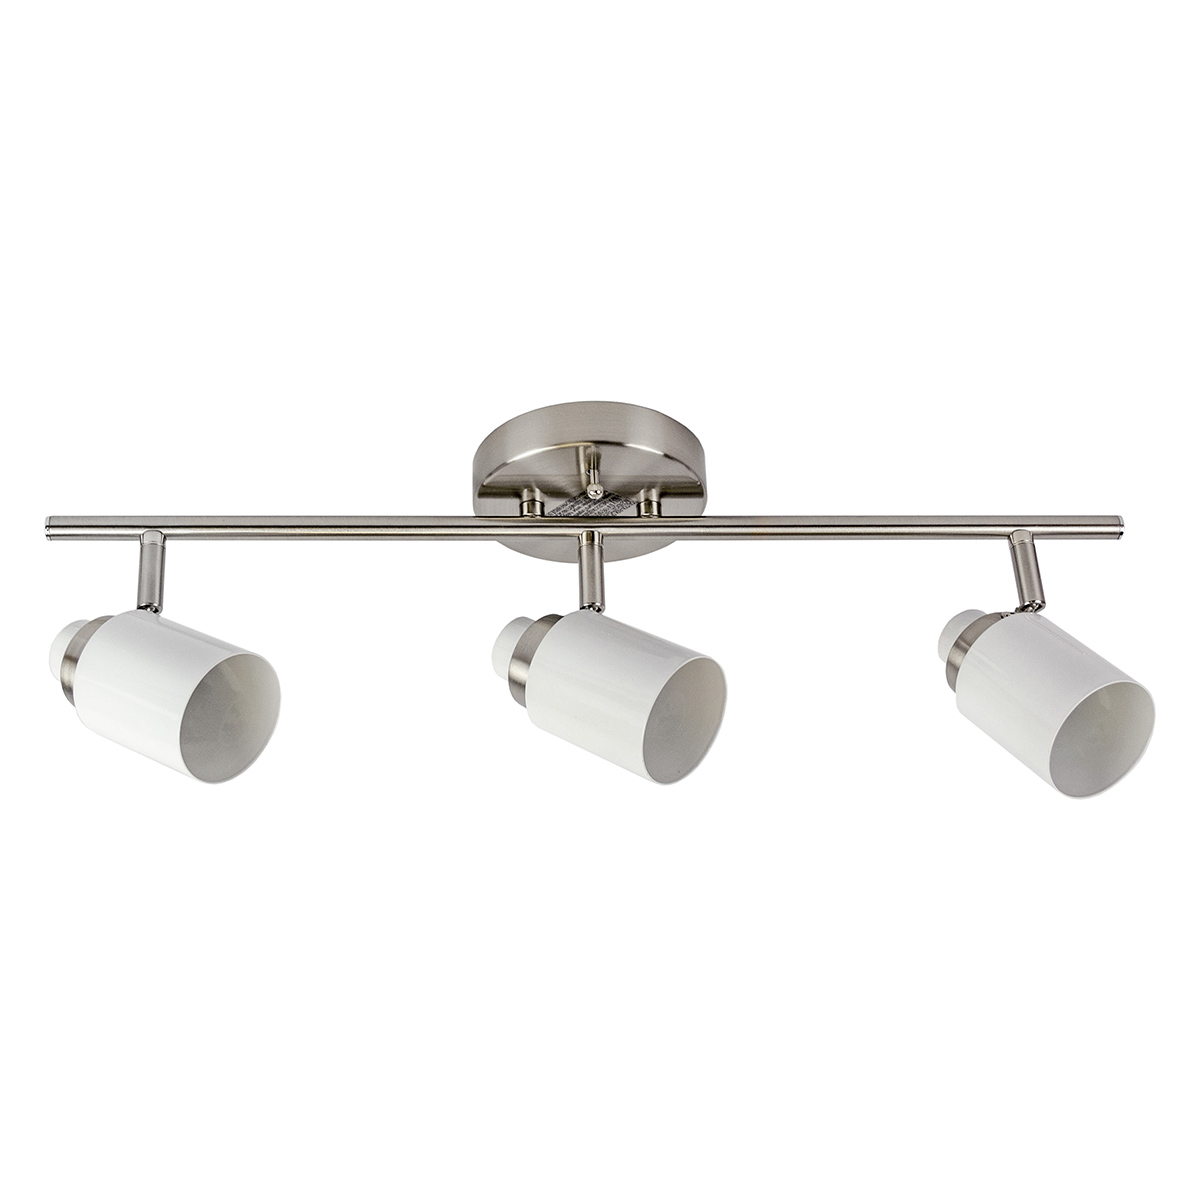 Catalina Lighting 3 Light Track Bar, White